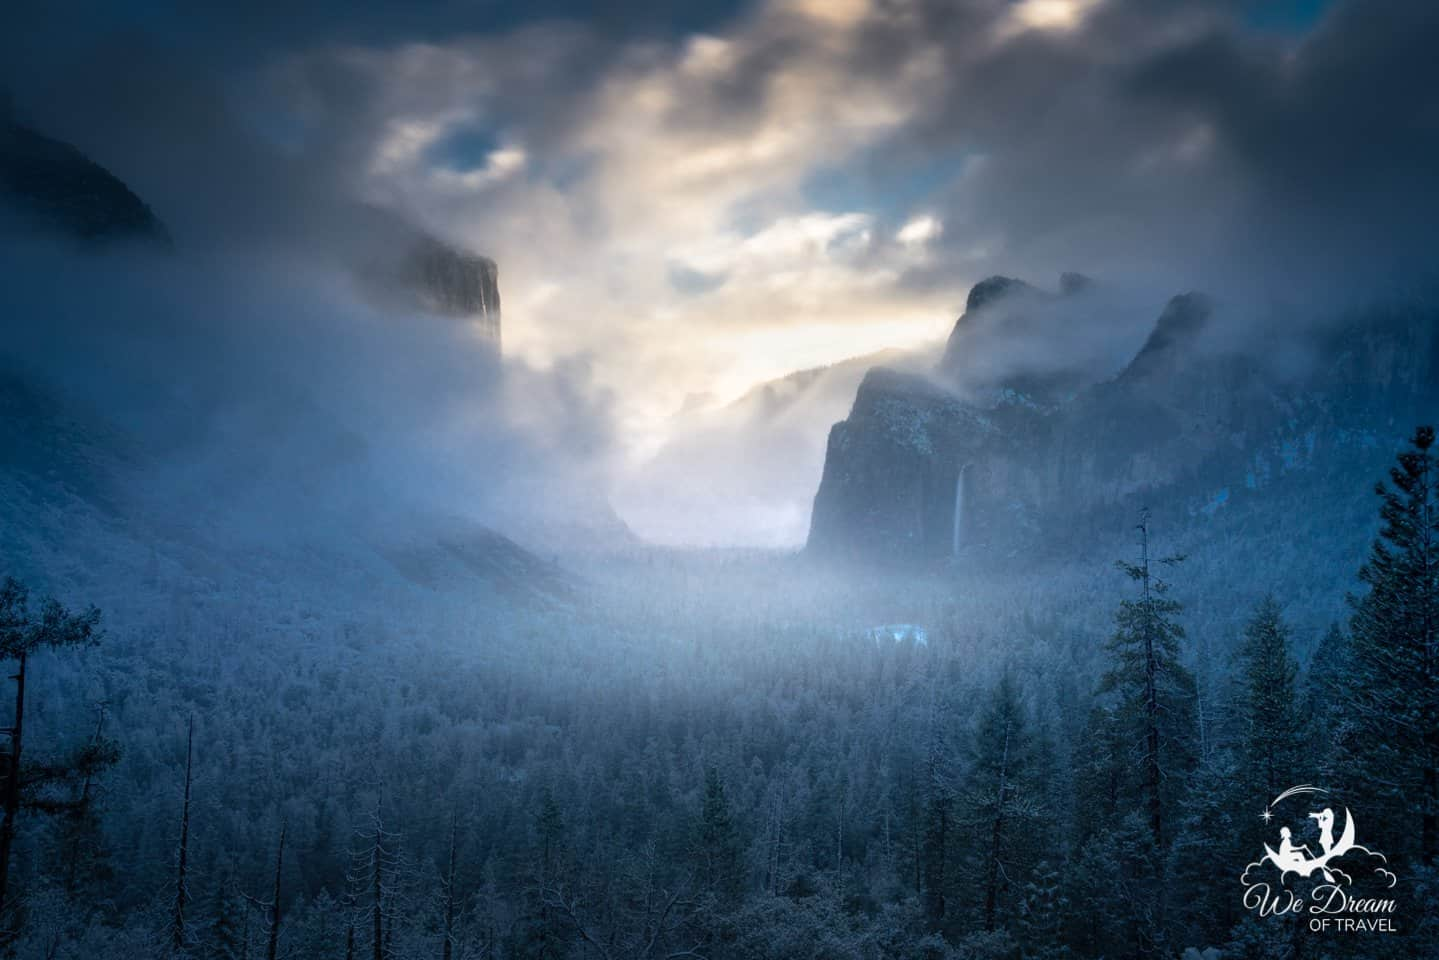 Moody winter sunrise photography from Yosemite's Tunnel View.